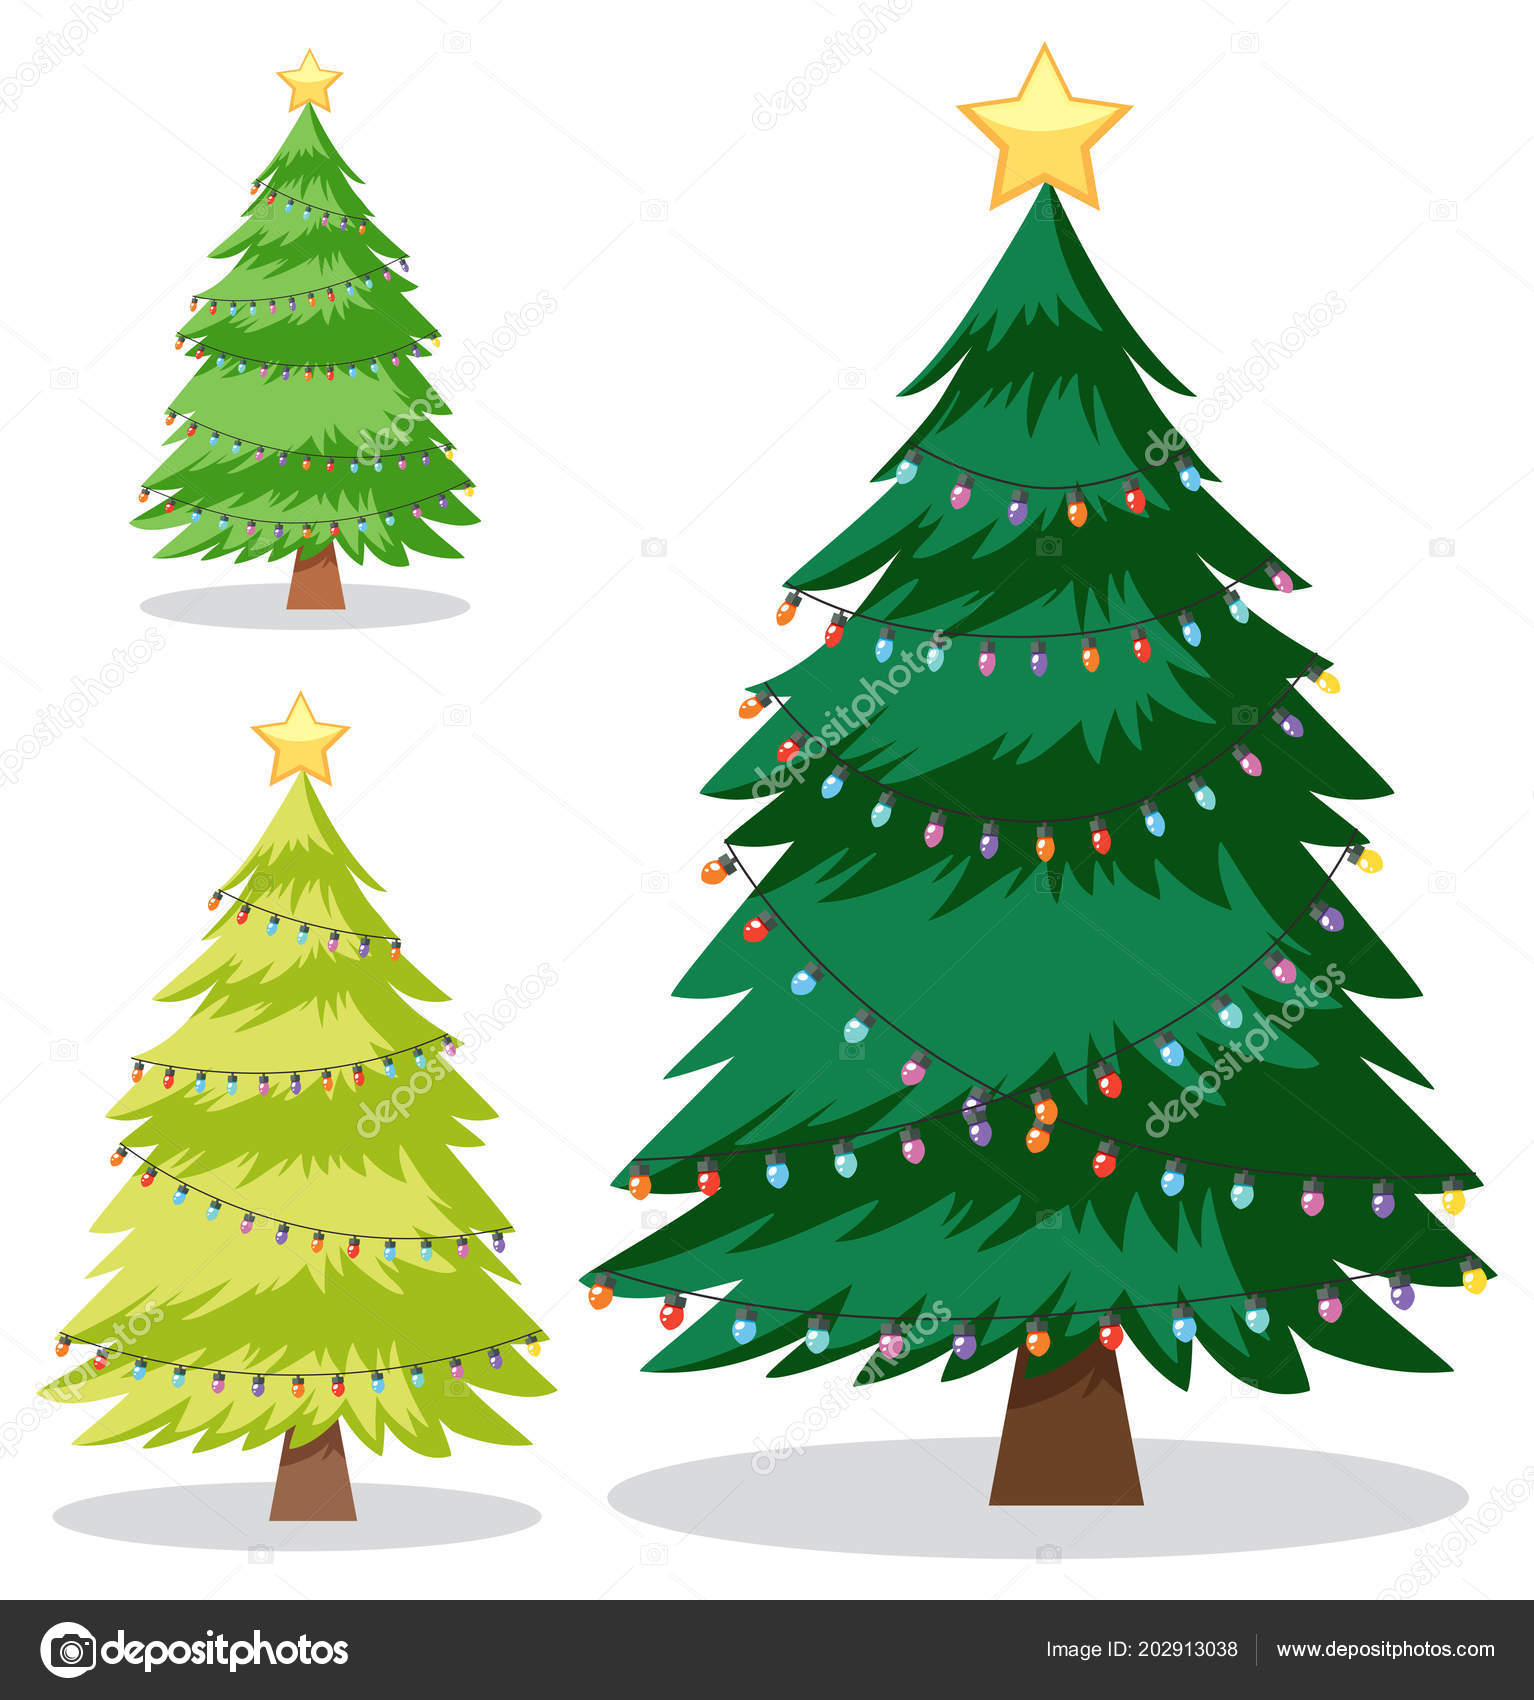 Christmas Tree Illustration.Set Christmas Tree Illustration Stock Vector